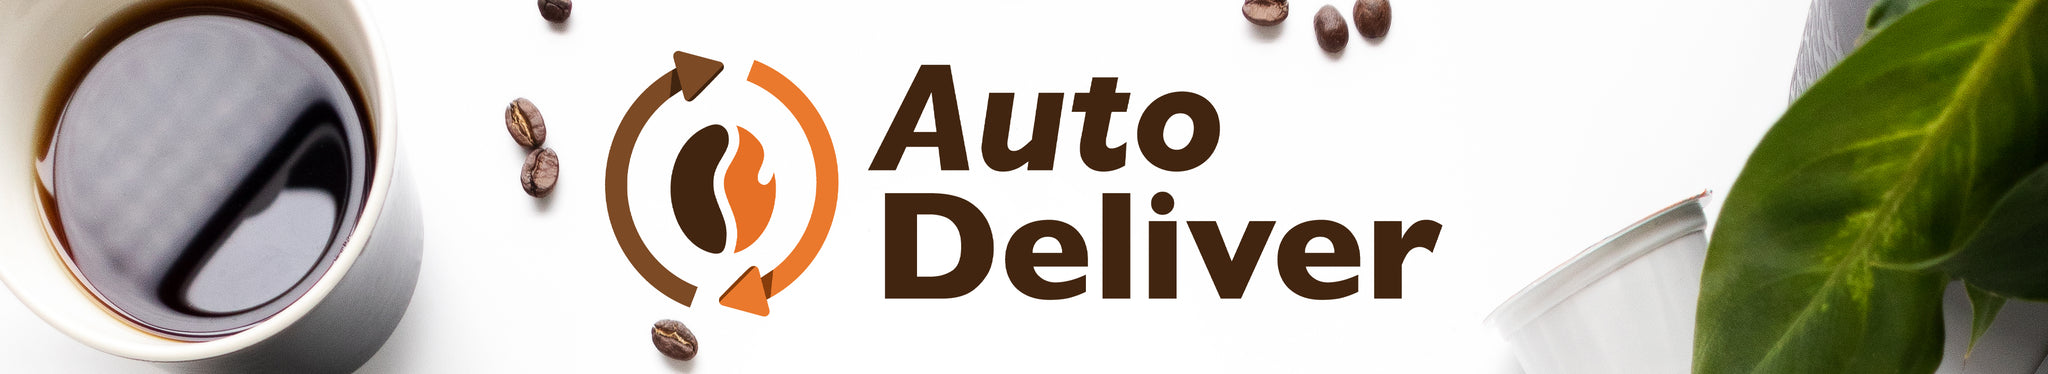 Auto Deliver logo on a white background with a cup of coffee, coffee beans, and a plant.